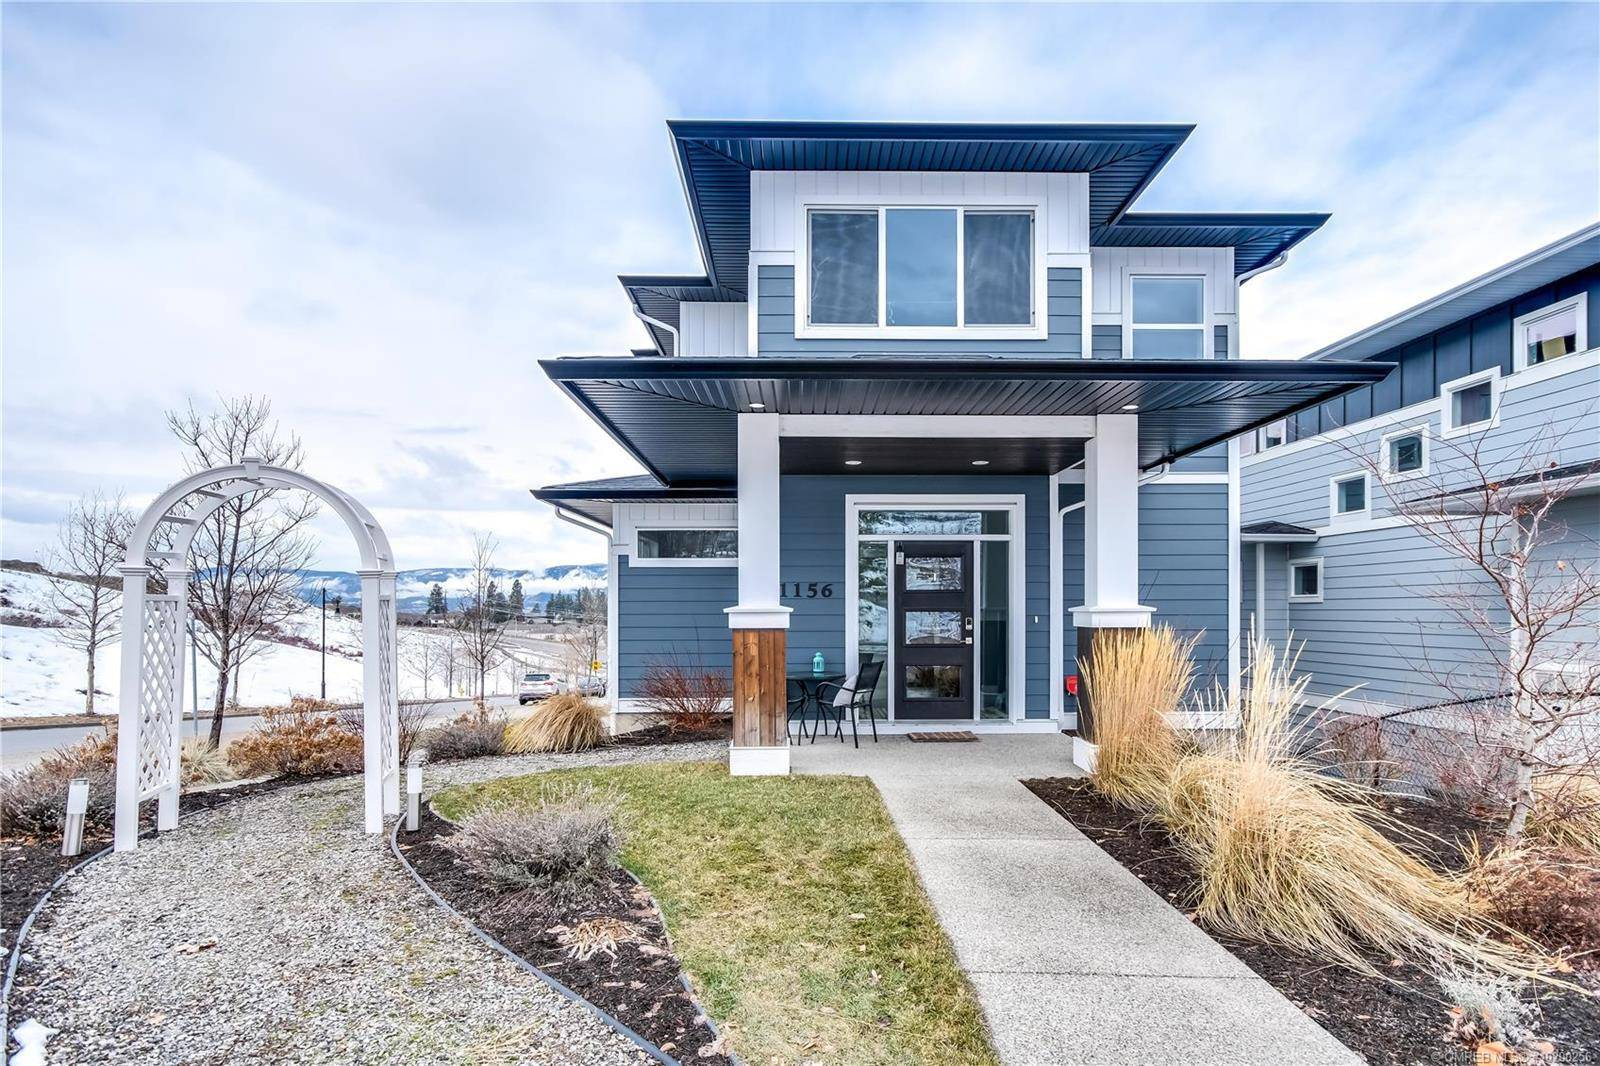 House for sale at 1156 Frost Rd Kelowna British Columbia - MLS: 10200256